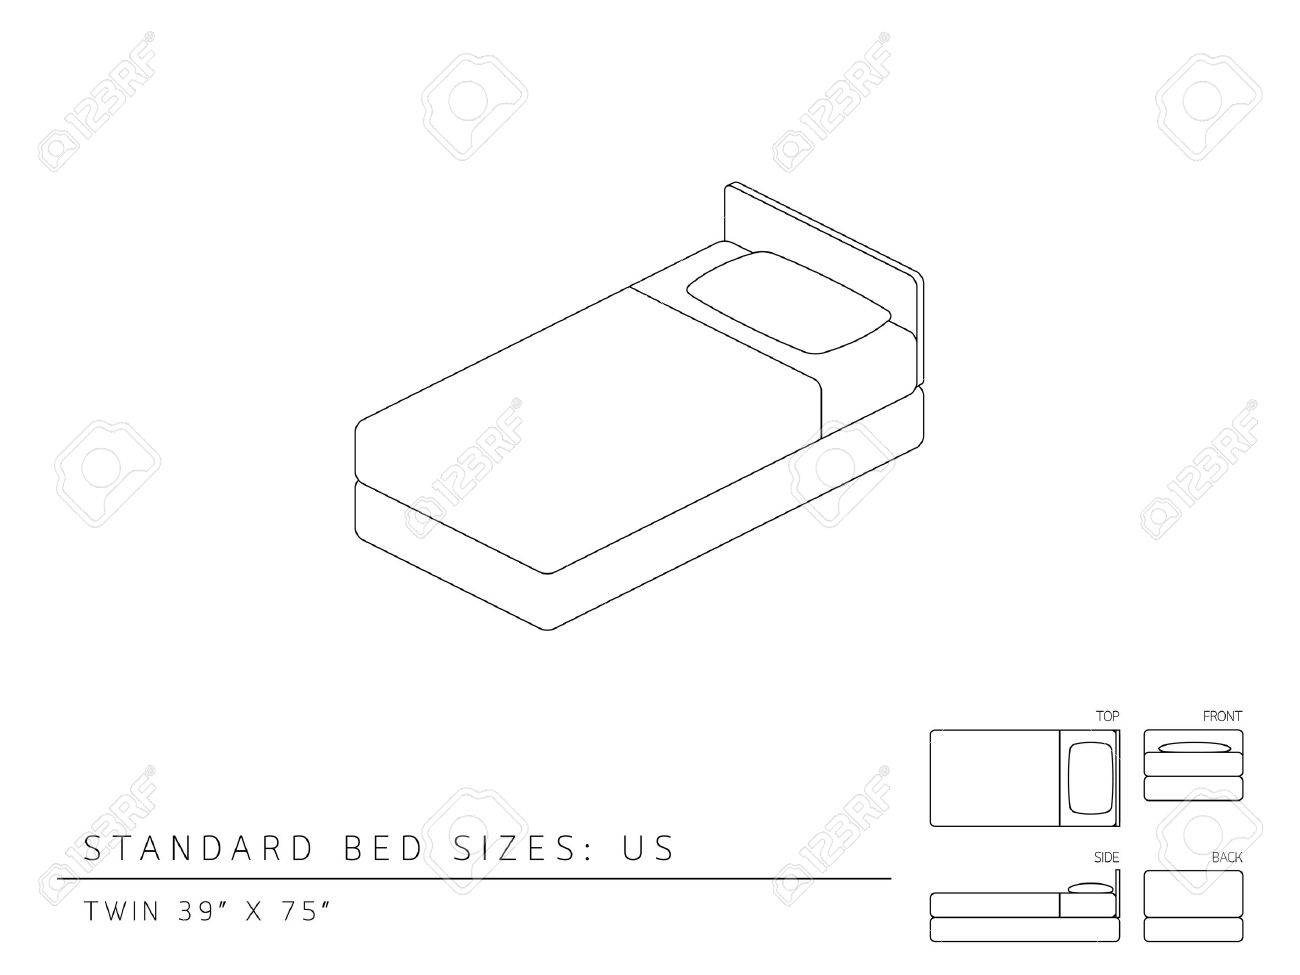 Standard Bed Sizes Of Us United States Of America Twin Size Royalty Free Cliparts Vectors And Stock Illustration Image 53131072